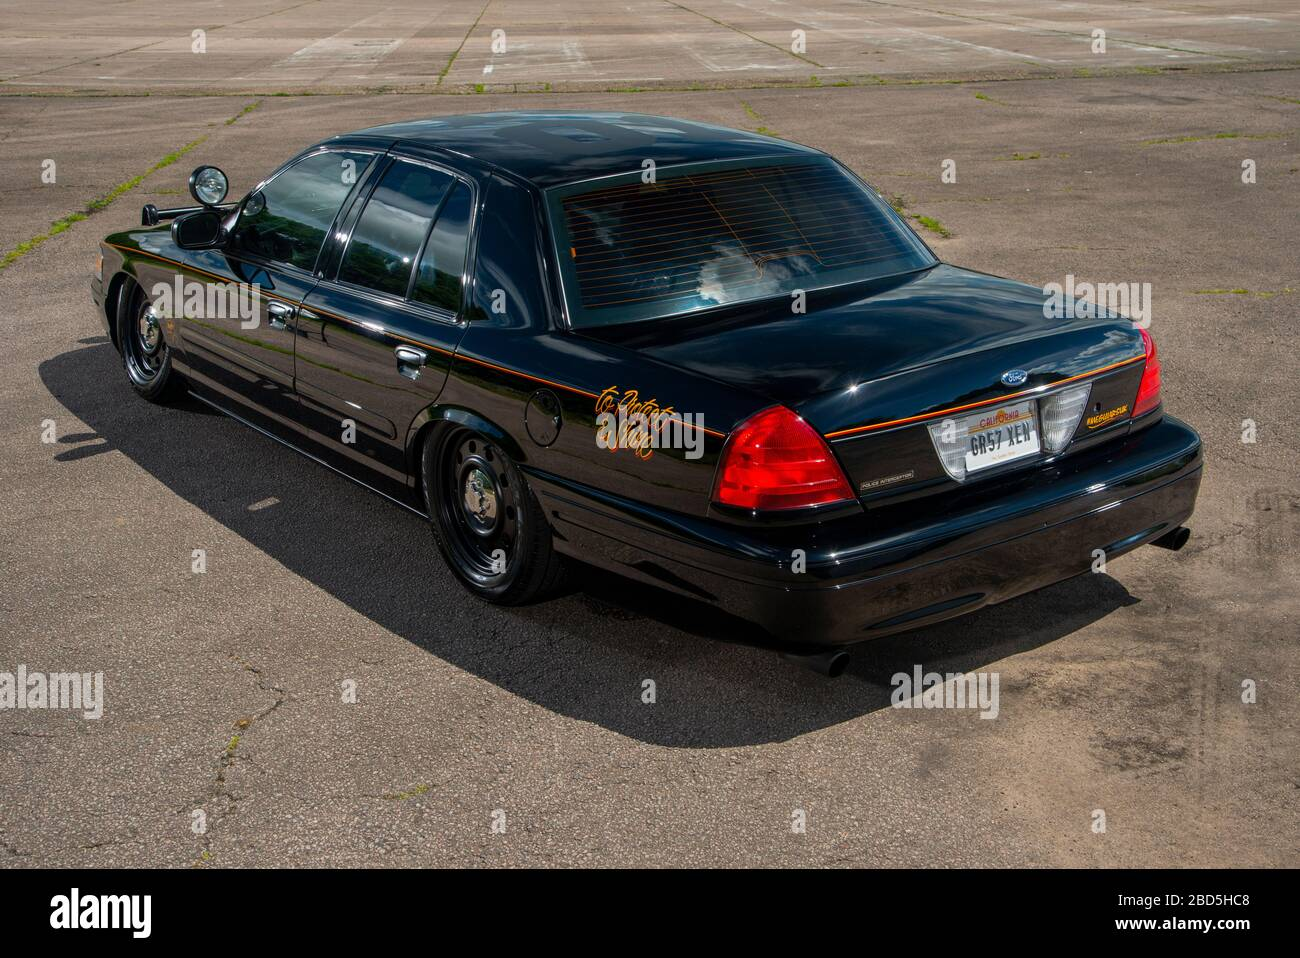 ford crown victoria police interceptor high resolution stock photography and images alamy https www alamy com 2007 ford crown victoria p71 american police car image352321320 html